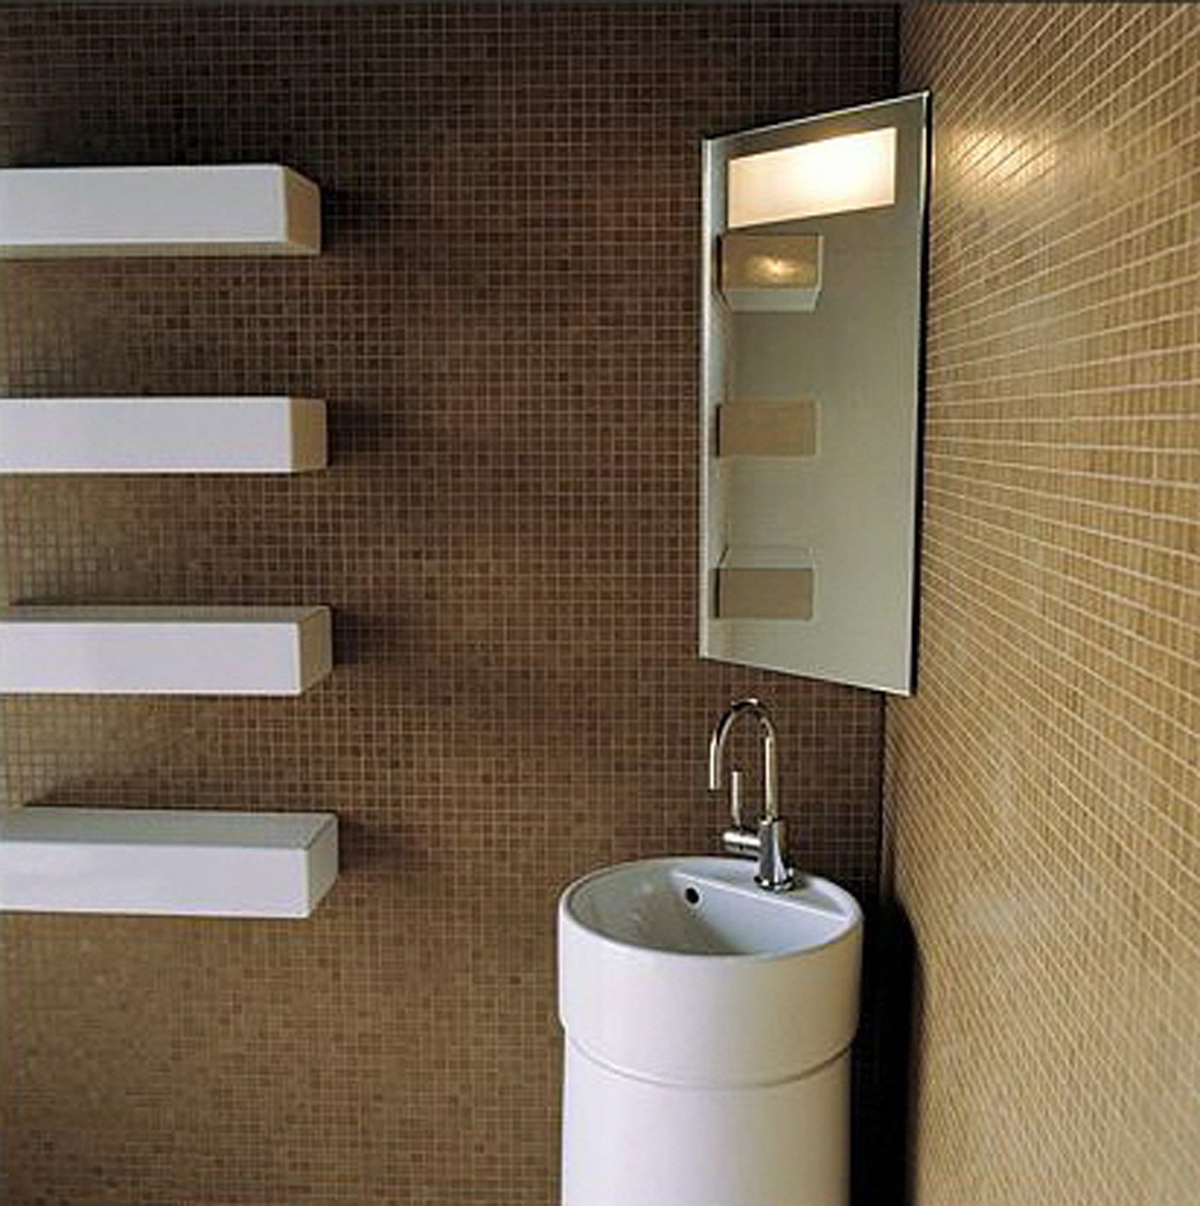 50 magnificent ultra modern bathroom tile ideas, photos, images on corner bathroom vanities for small bathrooms, corner bathroom cabinets online, corner bathroom shelving ideas, jack and jill bathroom design ideas, master bathroom remodeling ideas, bathroom cabinets design ideas, corner door ideas, corner bathroom cabinets and mirrors, corner coat rack ideas, corner bathroom counter organizer, corner medicine cabinet, corner bathroom countertop ideas, corner storage cabinet, corner lazy susan ideas, corner linen cabinet, corner cabinets for bathroom, corner bathroom vanity, corner dresser ideas, corner cabinet furniture, corner bathroom storage,